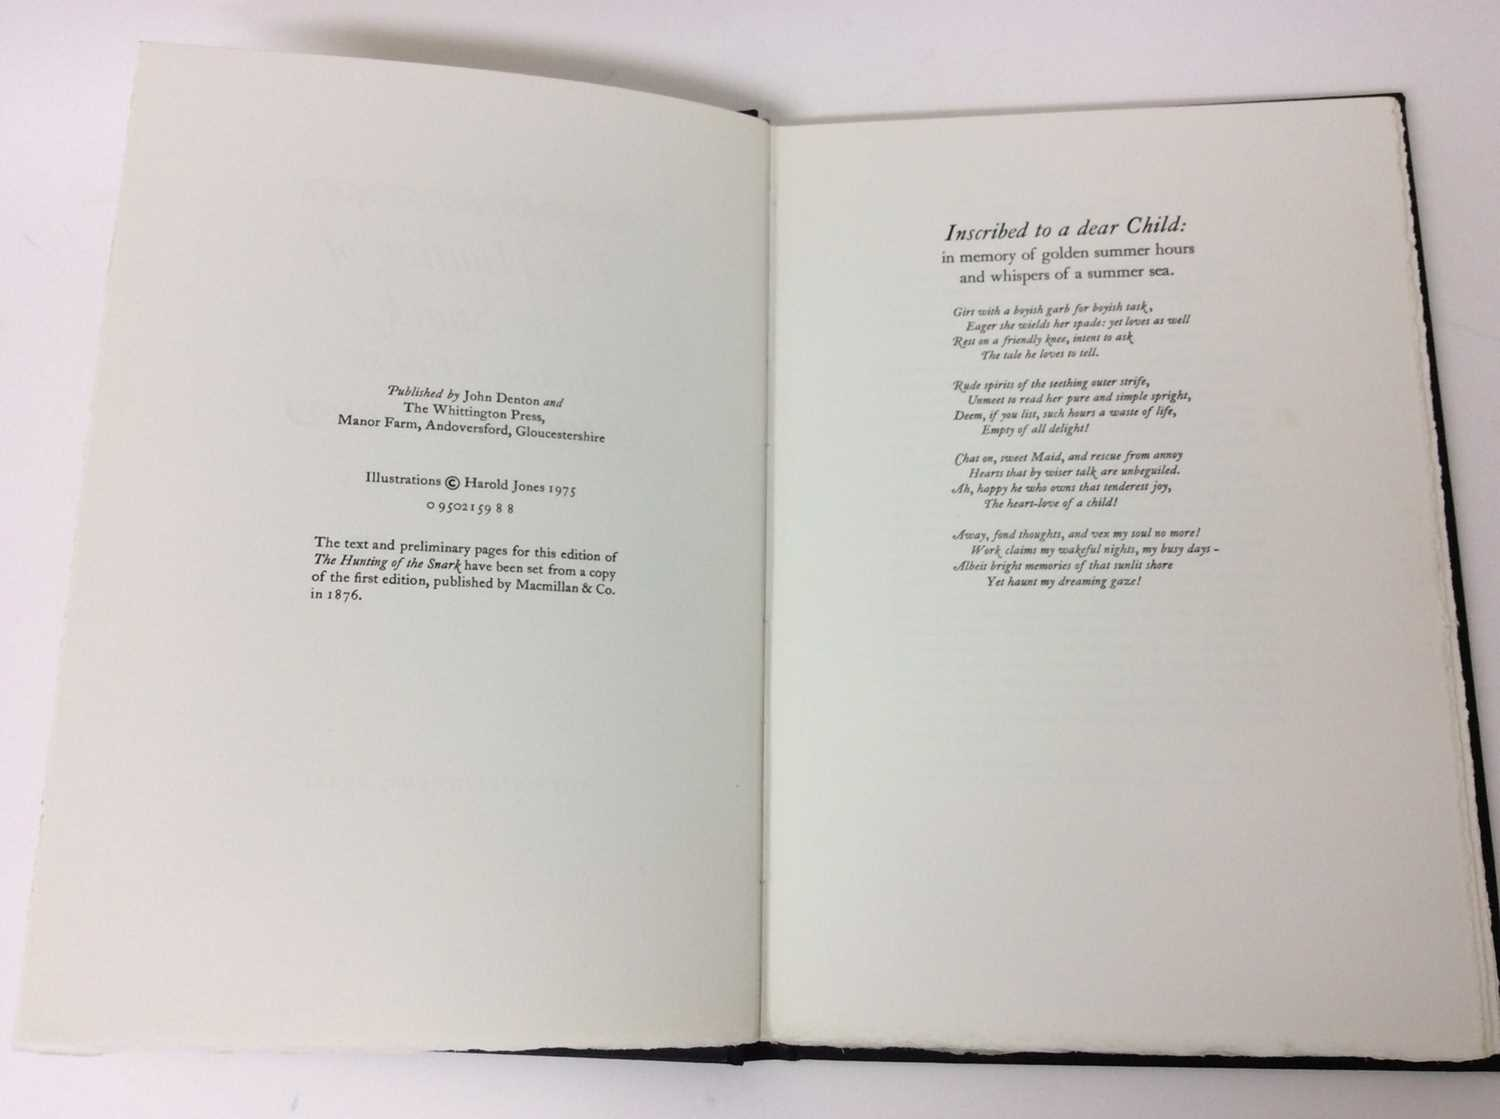 Lewis Carroll - The Hunting of the Snark, Whittington Press 1975, 404/750 - Image 4 of 10